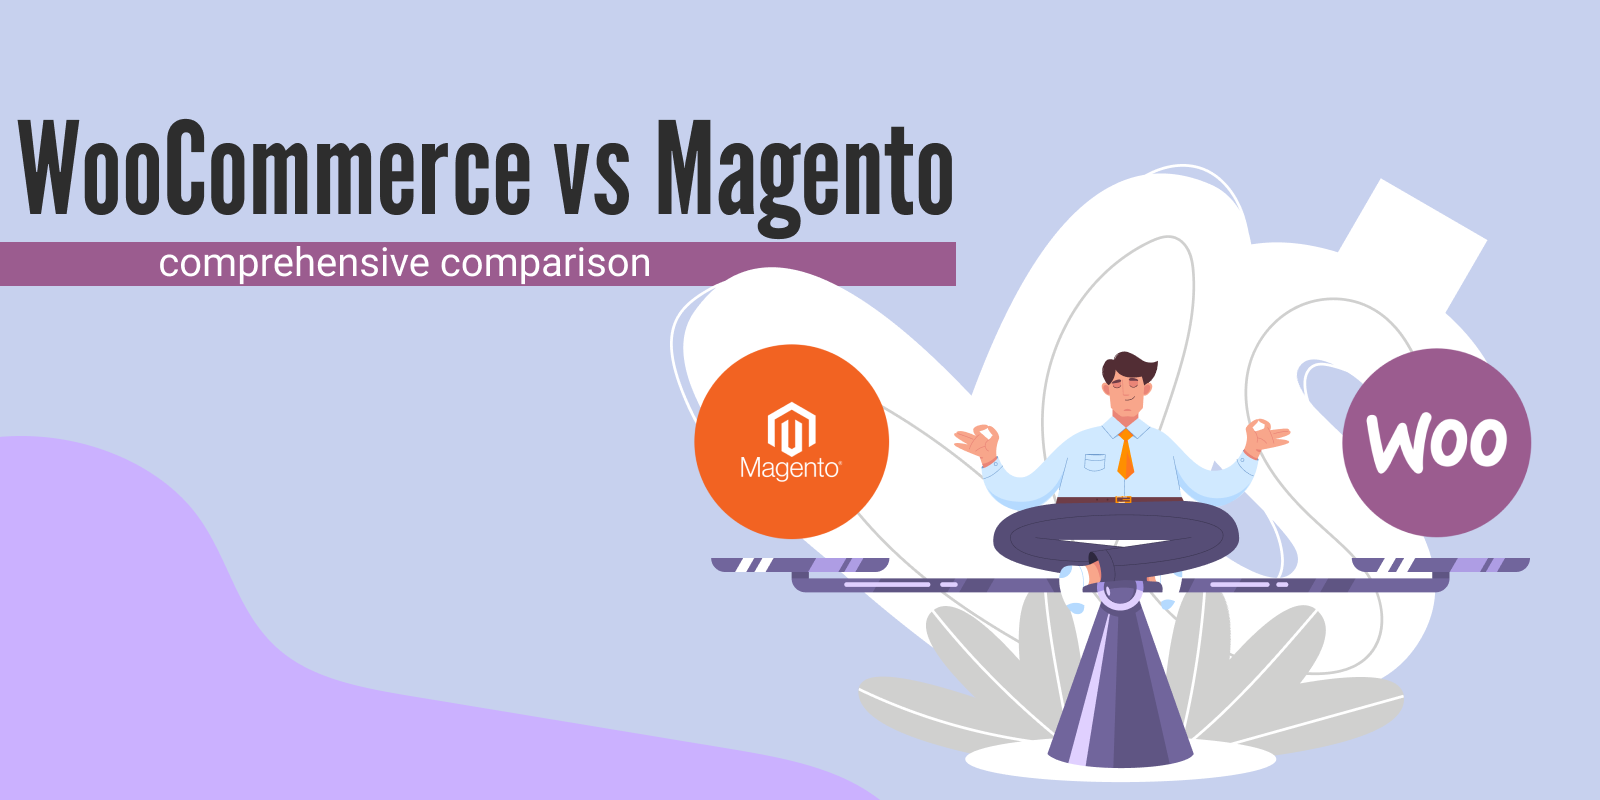 Comprehensive comparison of WooCommerce and Magento in 2021